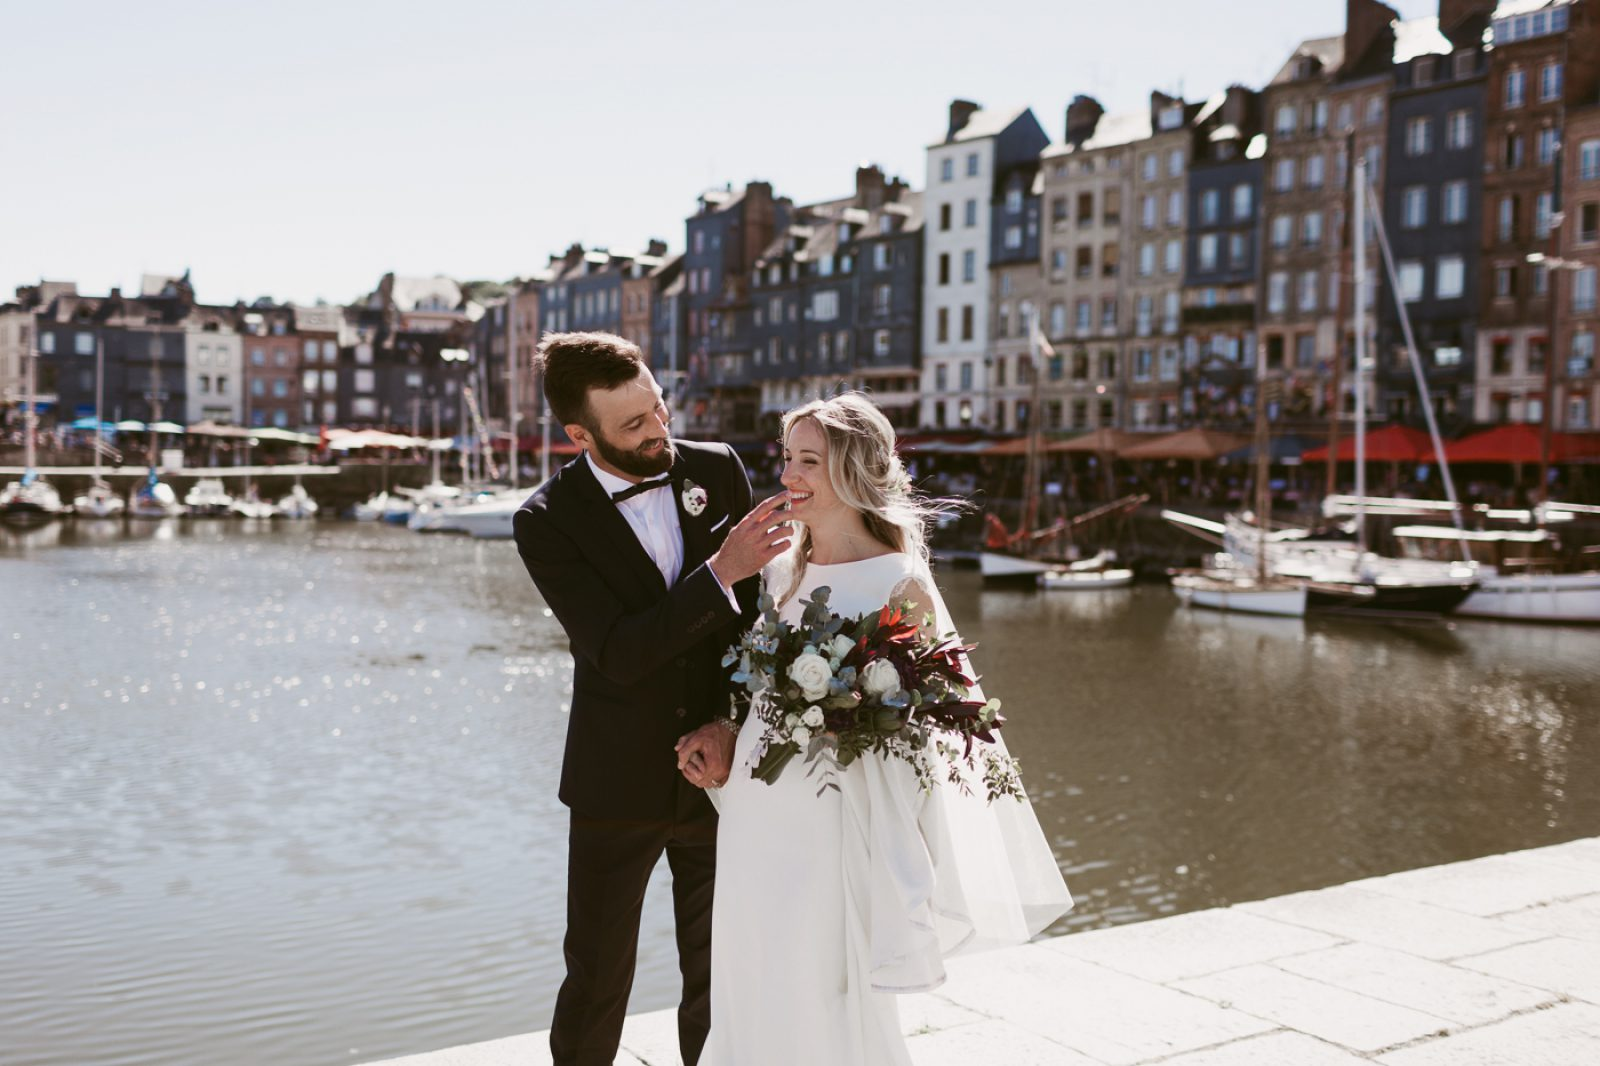 Jamie_English_Photography_BrianMarine__Honfleur_Normandy_France_Wedding_7.16.16_LR-389